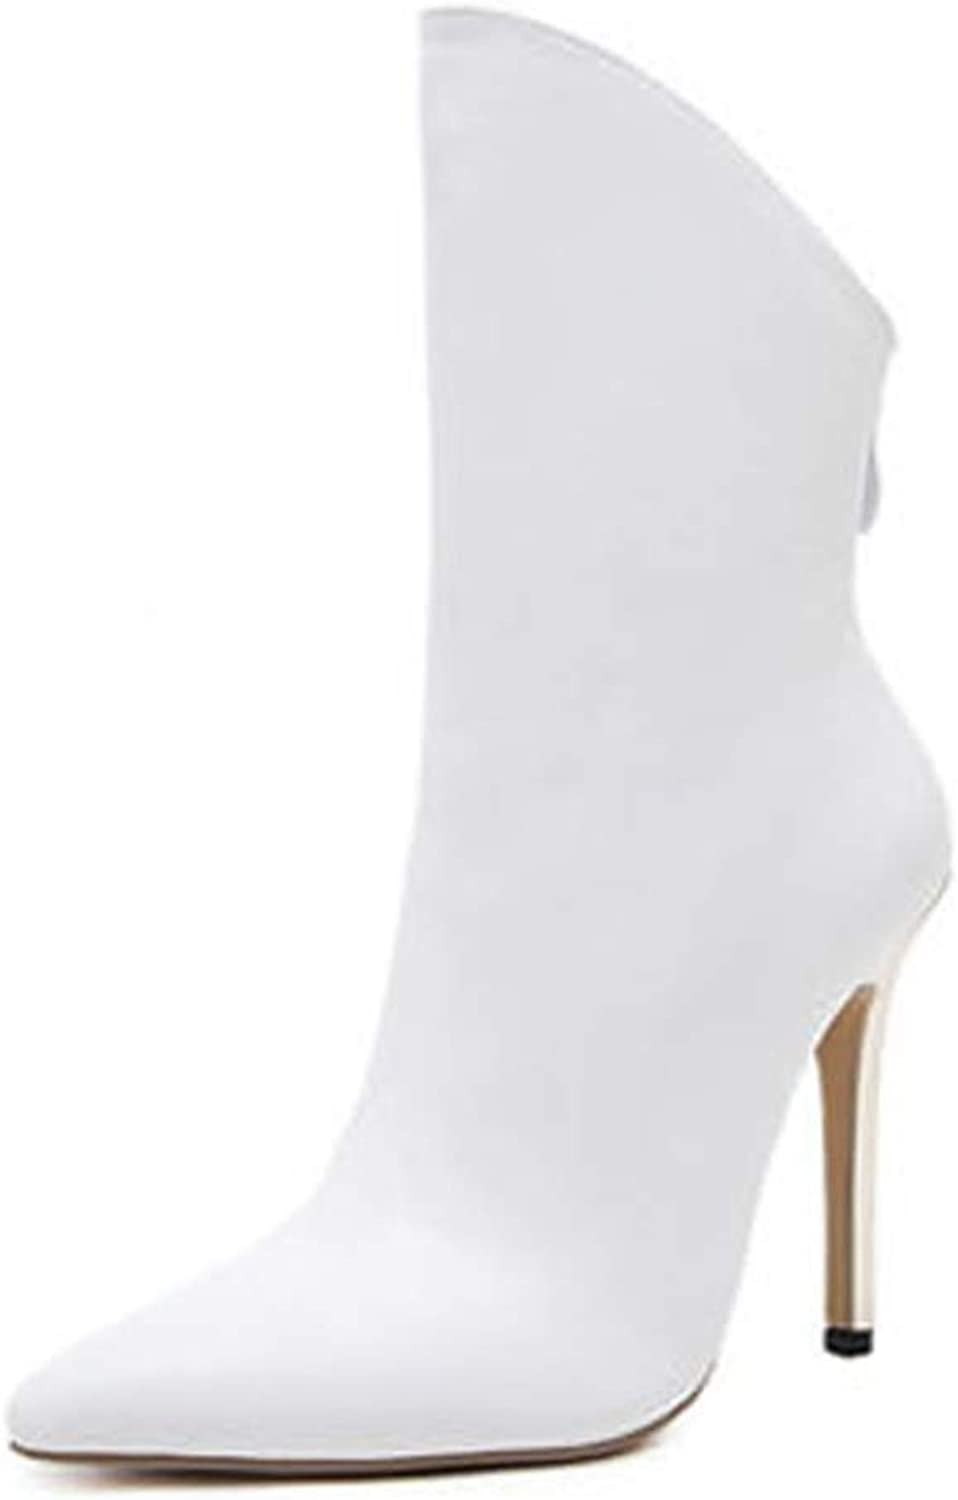 SANOMY Women Stiletto Heel Booties Sexy Pointed Toe Ankle Boots Zip-Up Wide Calf Chelsea Boots, White